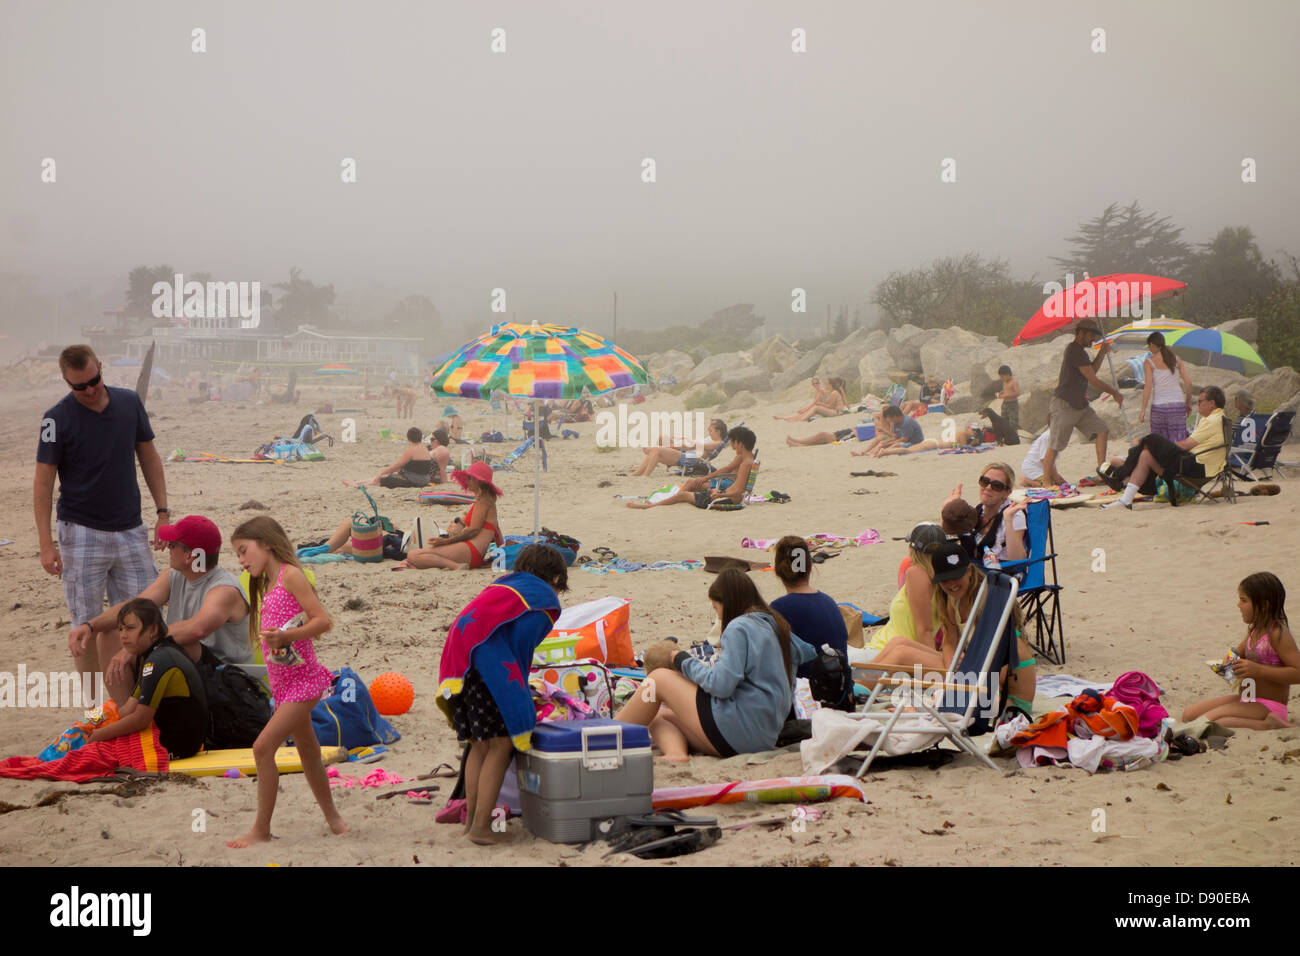 Families on beach on gloomy foggy June day on the coast of California United States - Stock Image